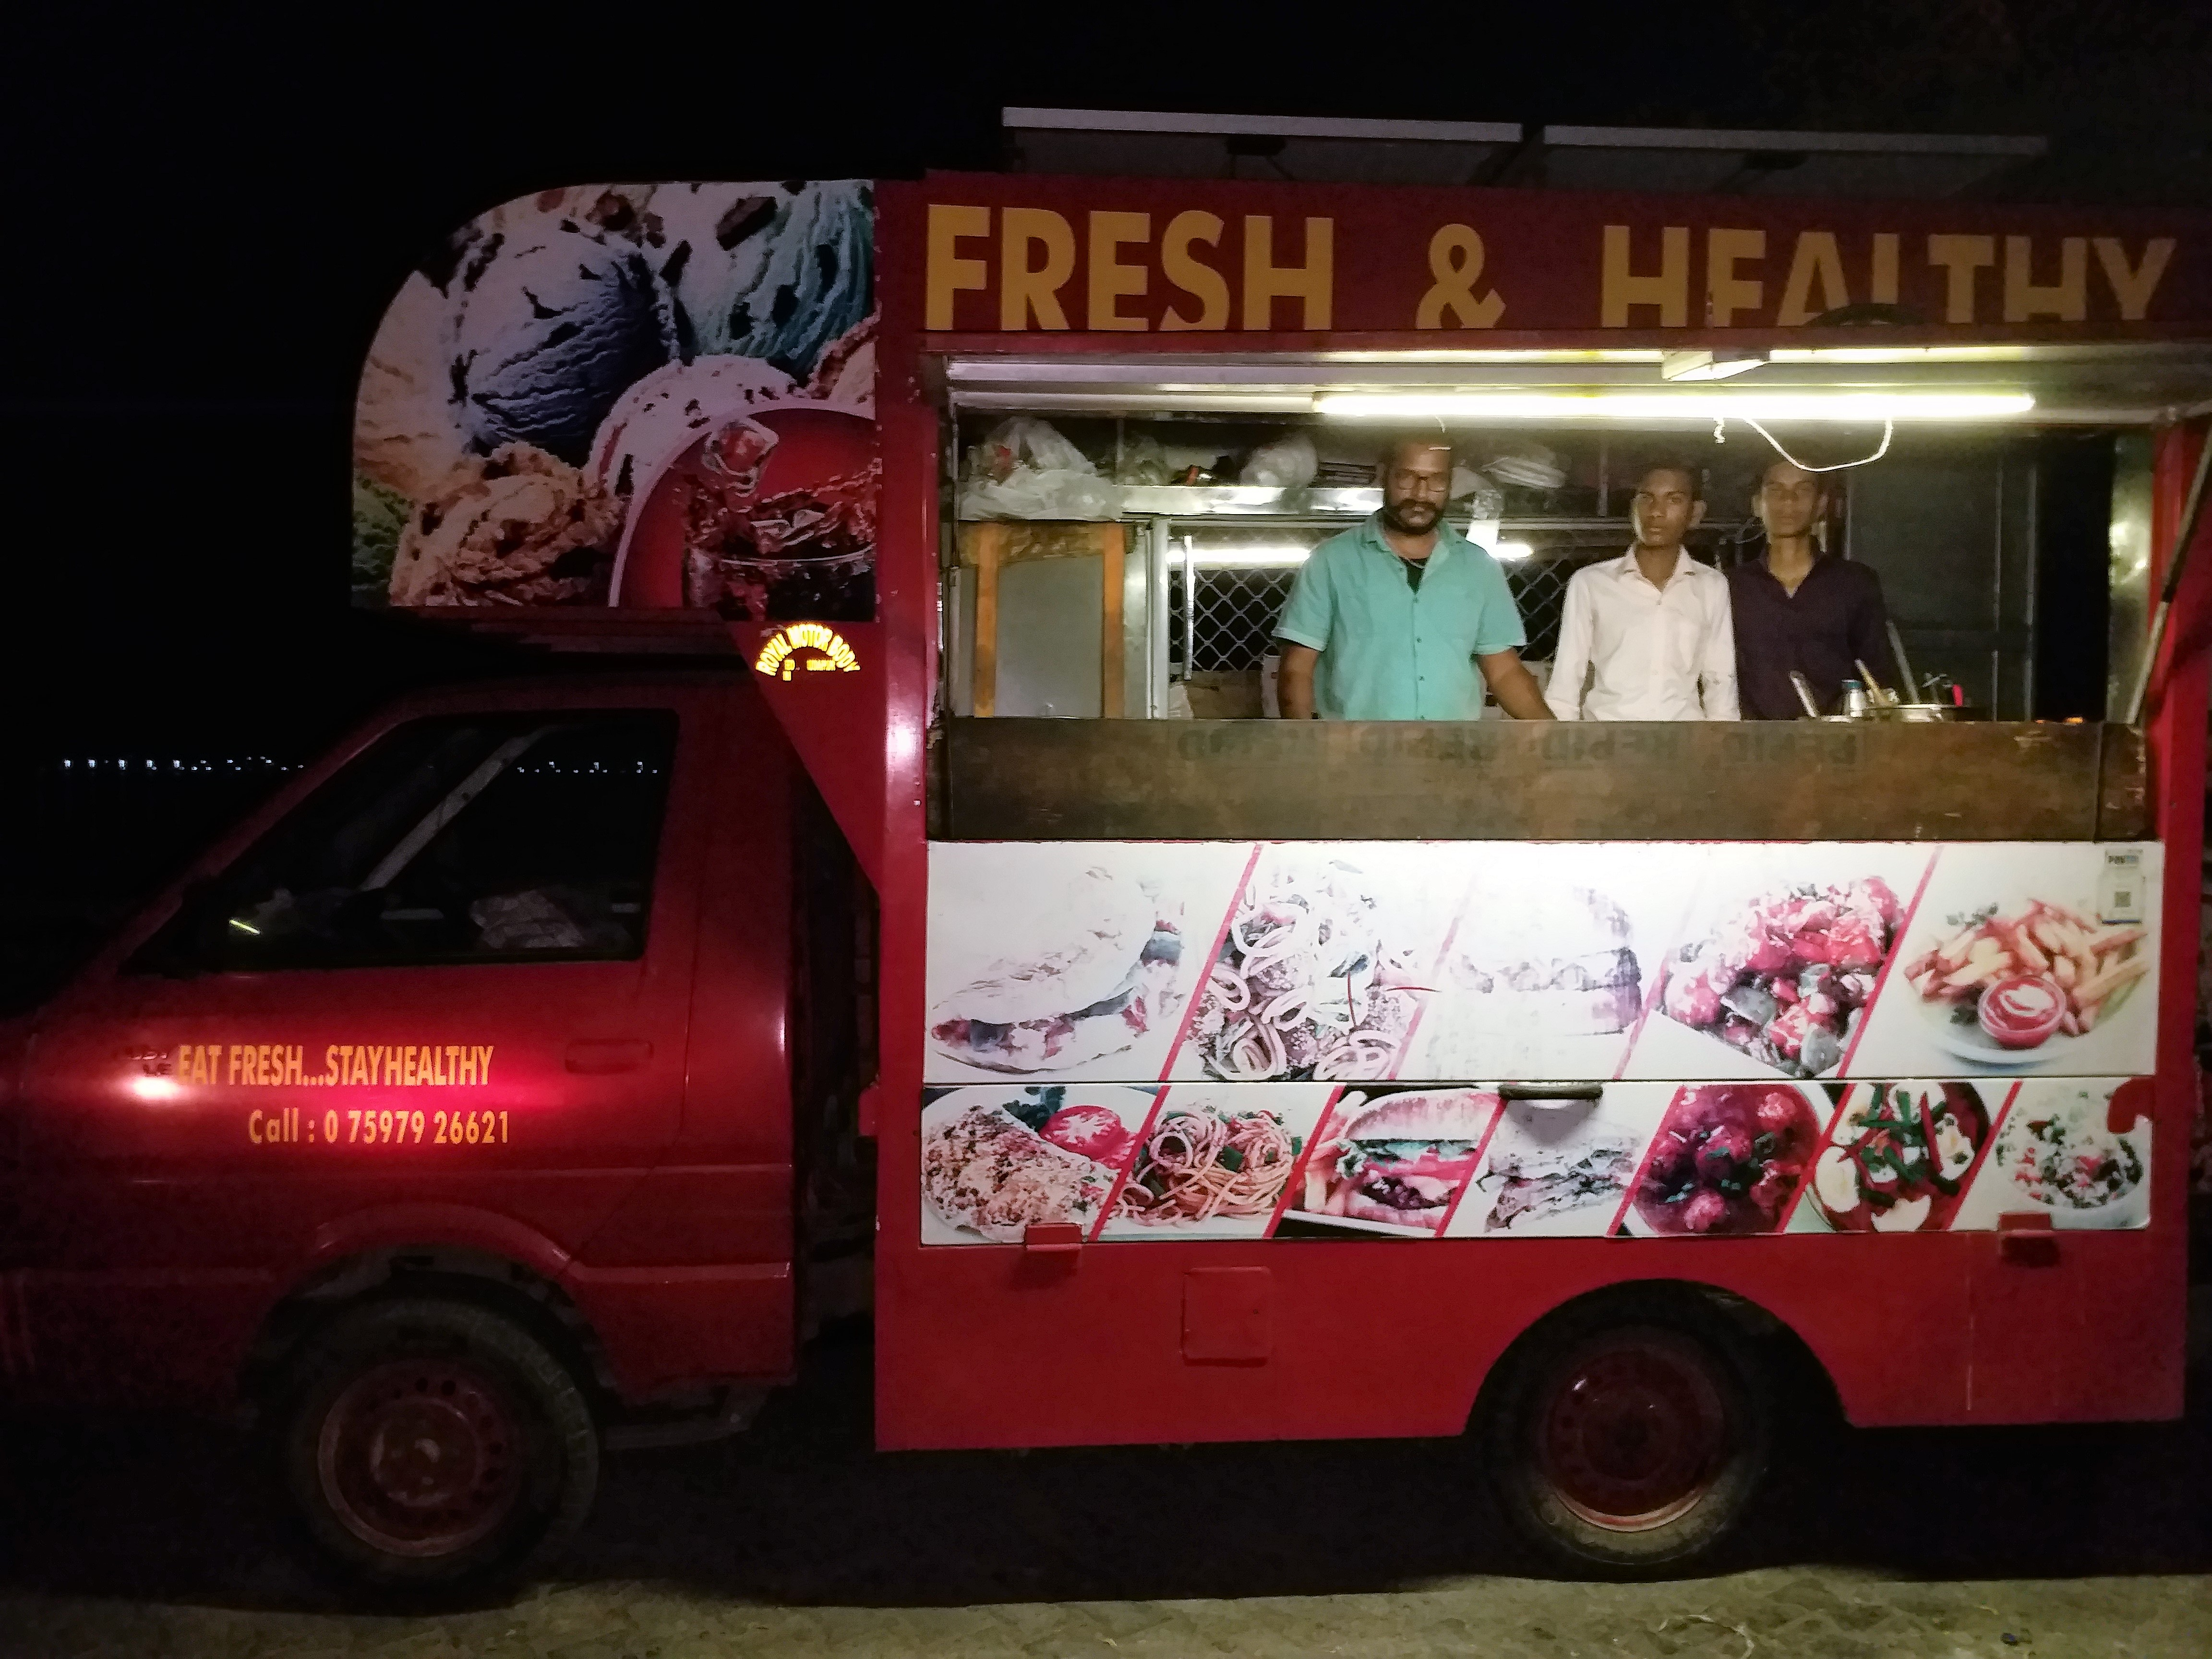 Getting along with the food truck fad - Here's a list of Udaipur's food trucks